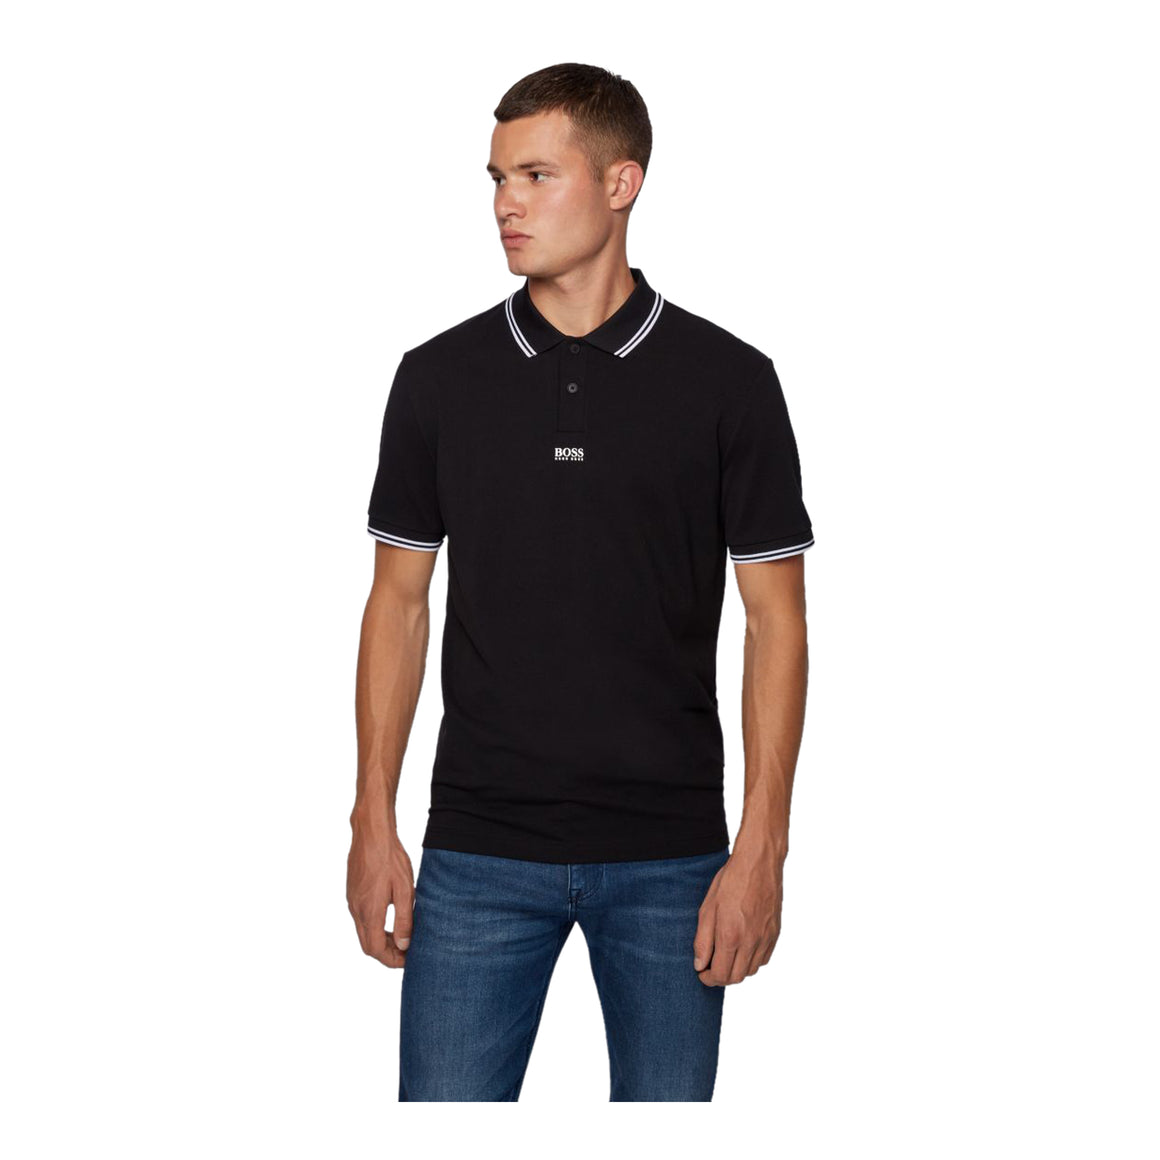 Pchup Tipped Polo for Men in Black